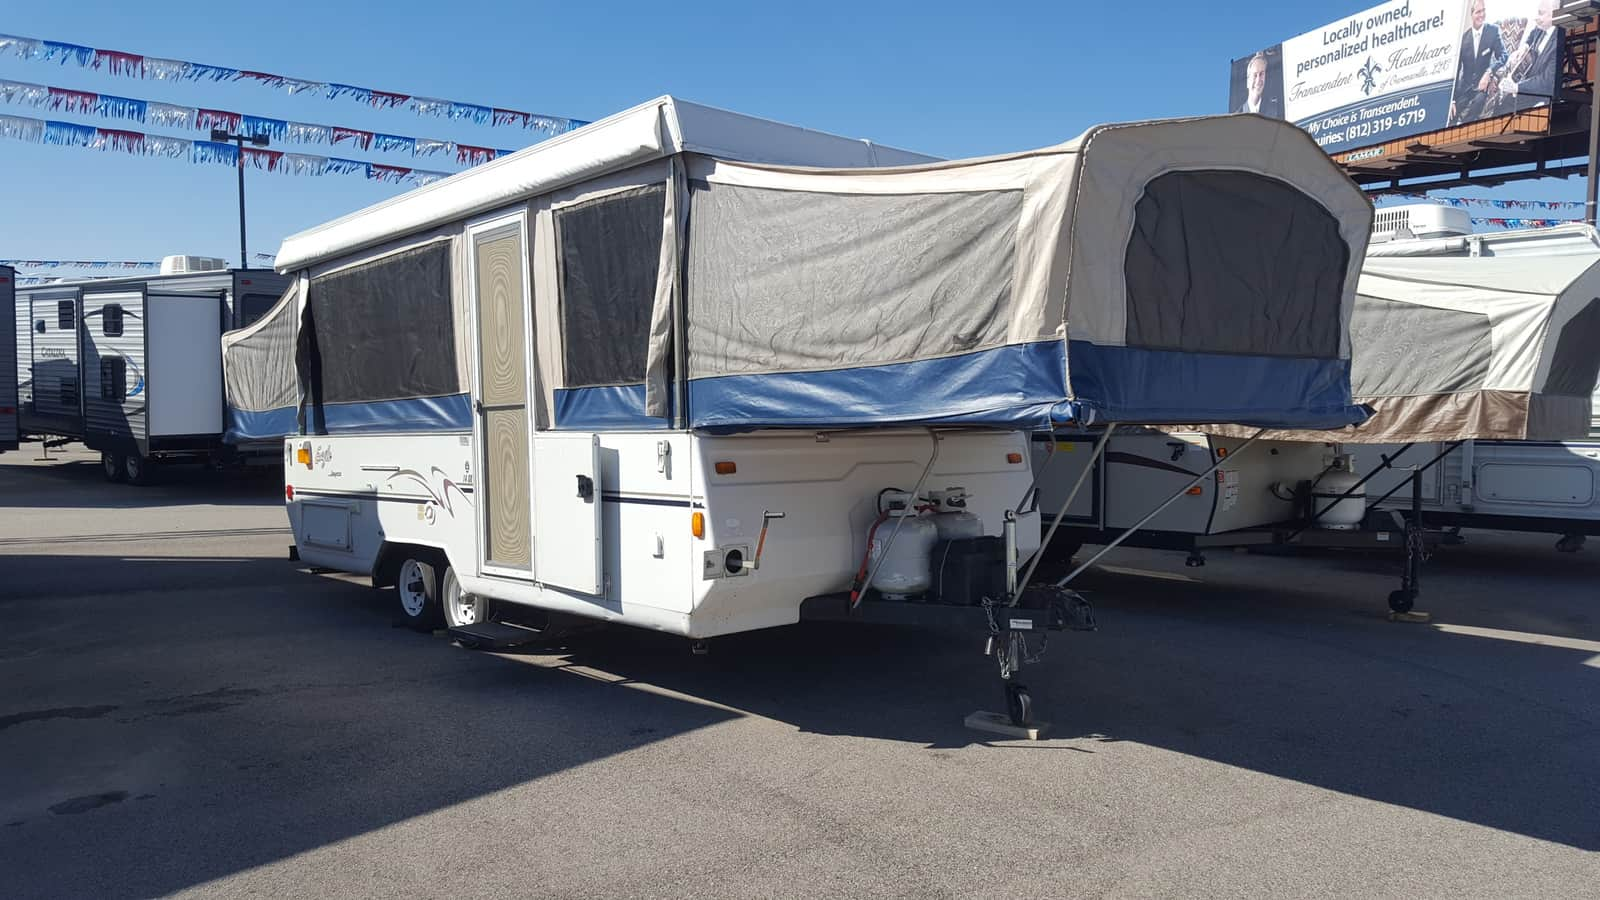 USED 2003 Jayco EAGLE 14SO - American RV